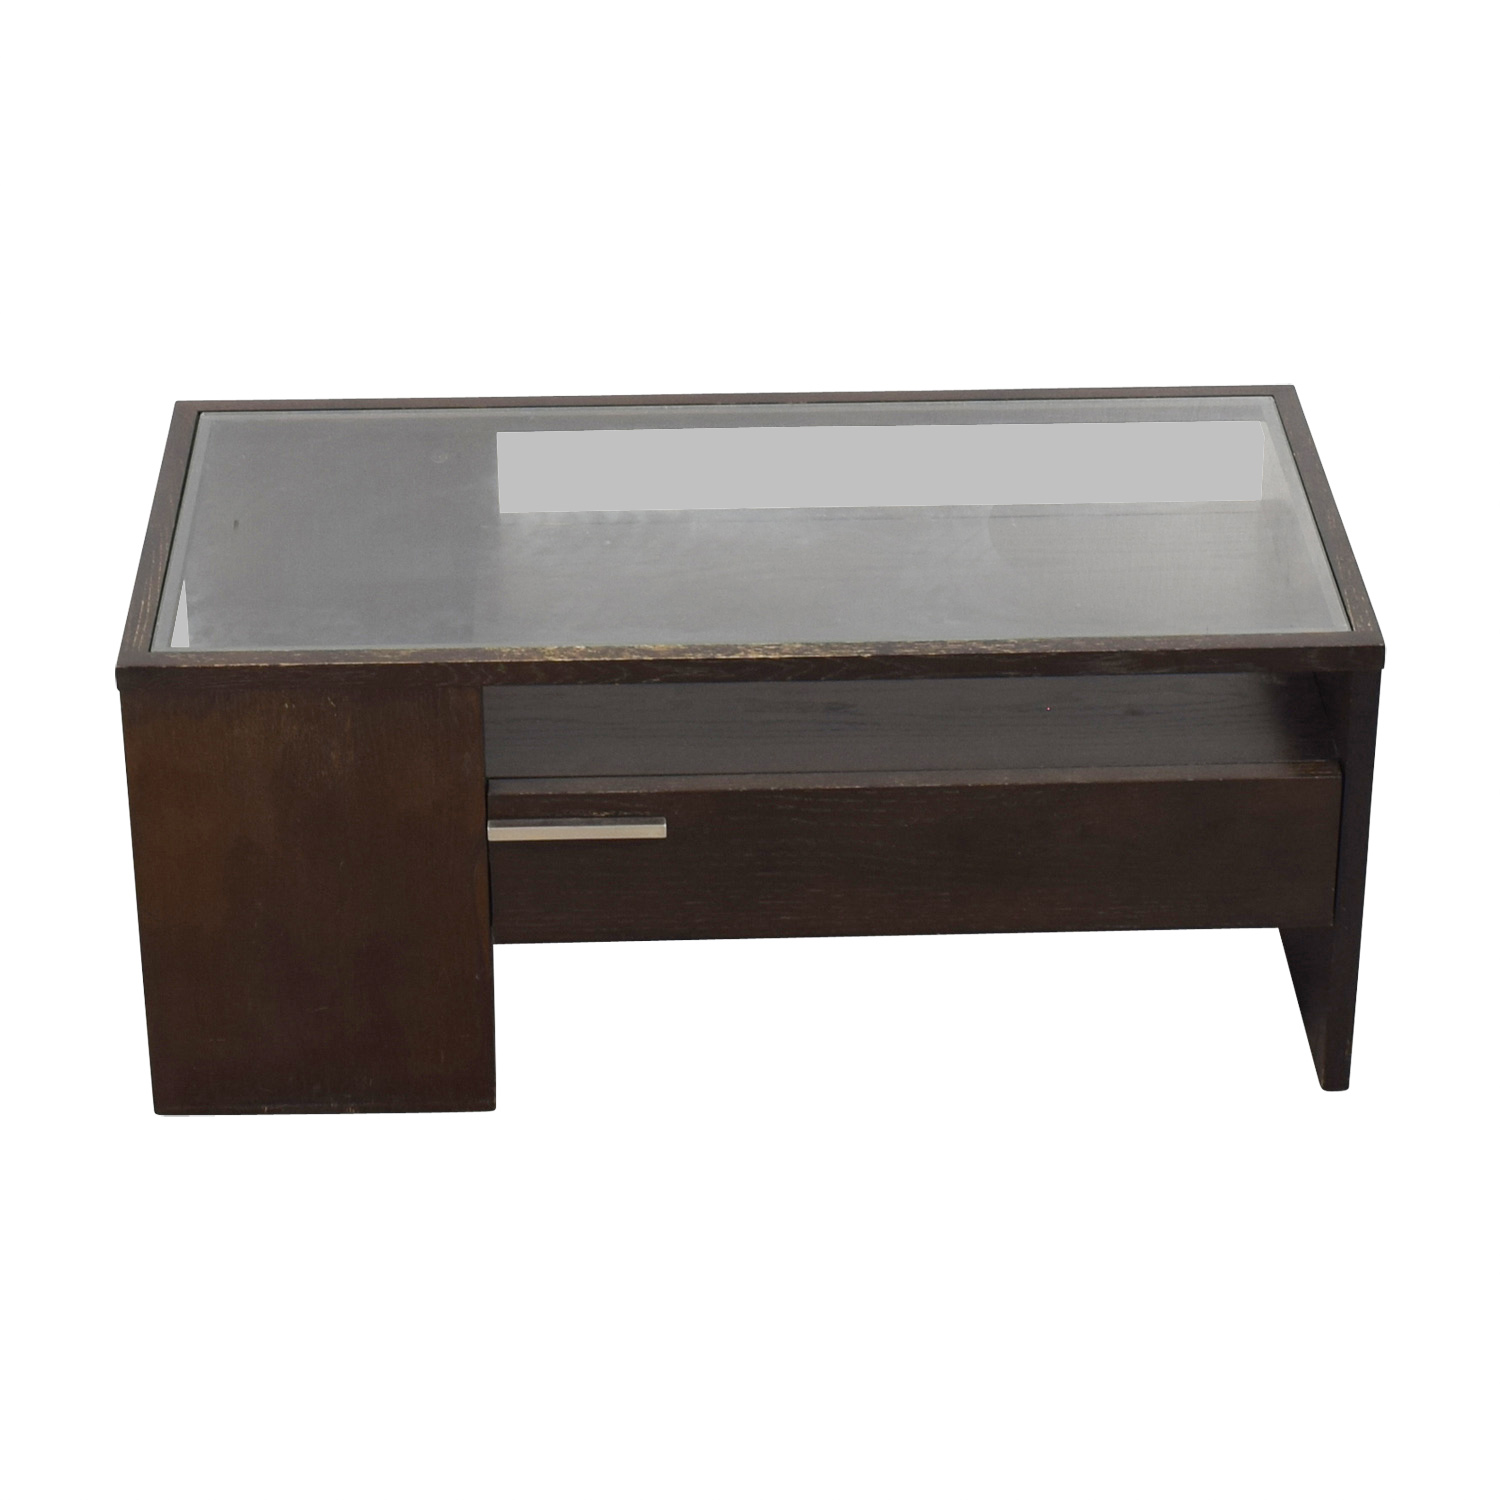 West Elm West Elm Single Drawer Glass Top Coffee Table discount